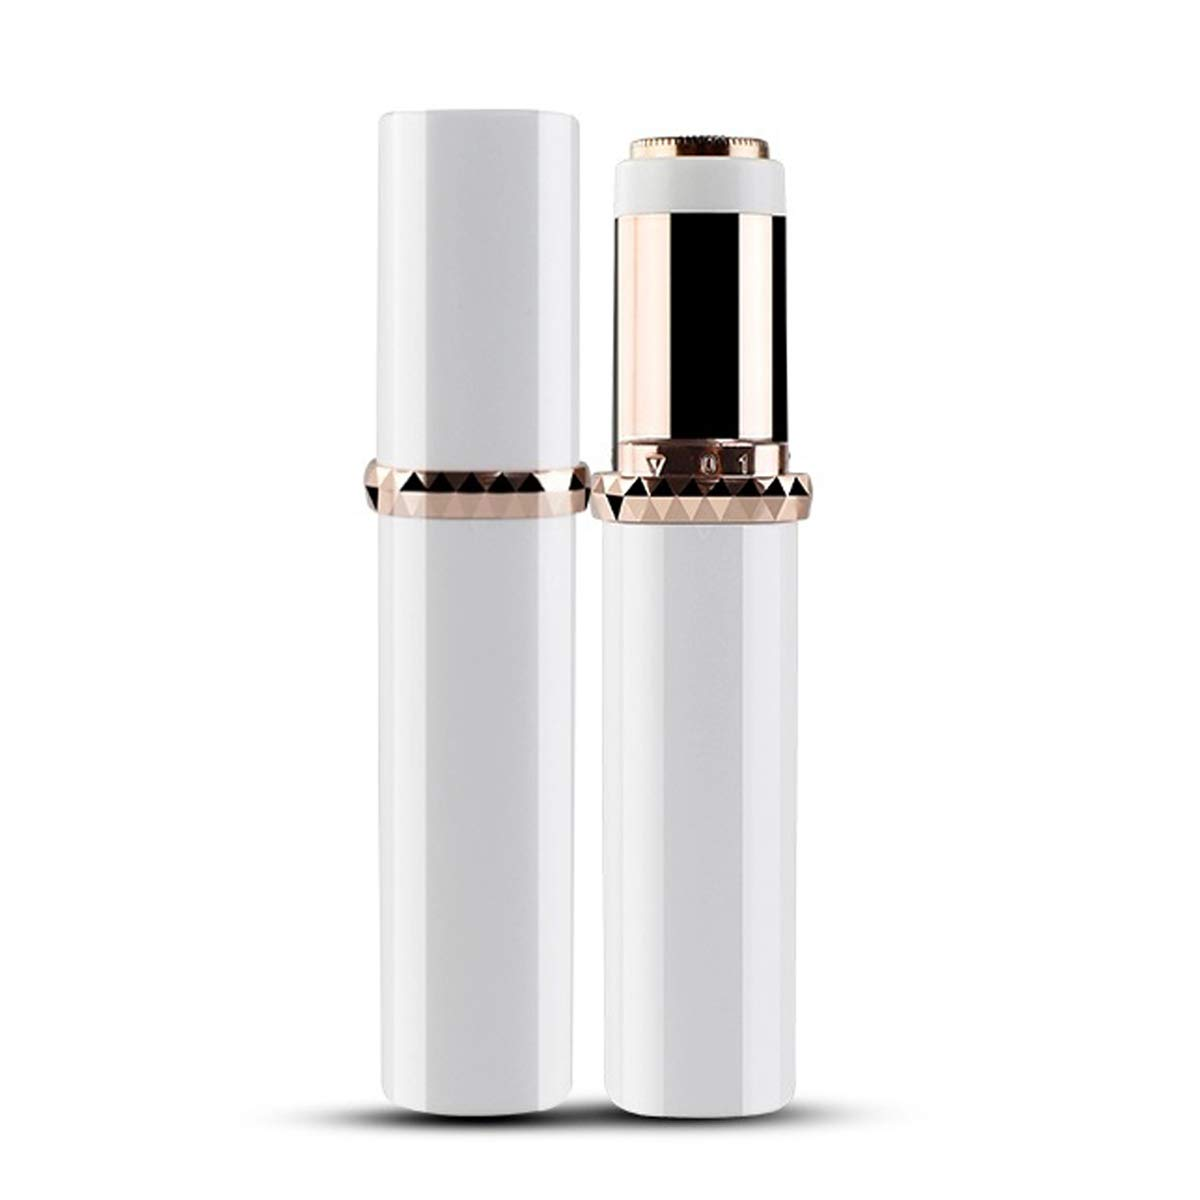 Upgrade Denver Mall Quiet Facial Hair Fashionable Remover Women Ha Painless Gominyuf For